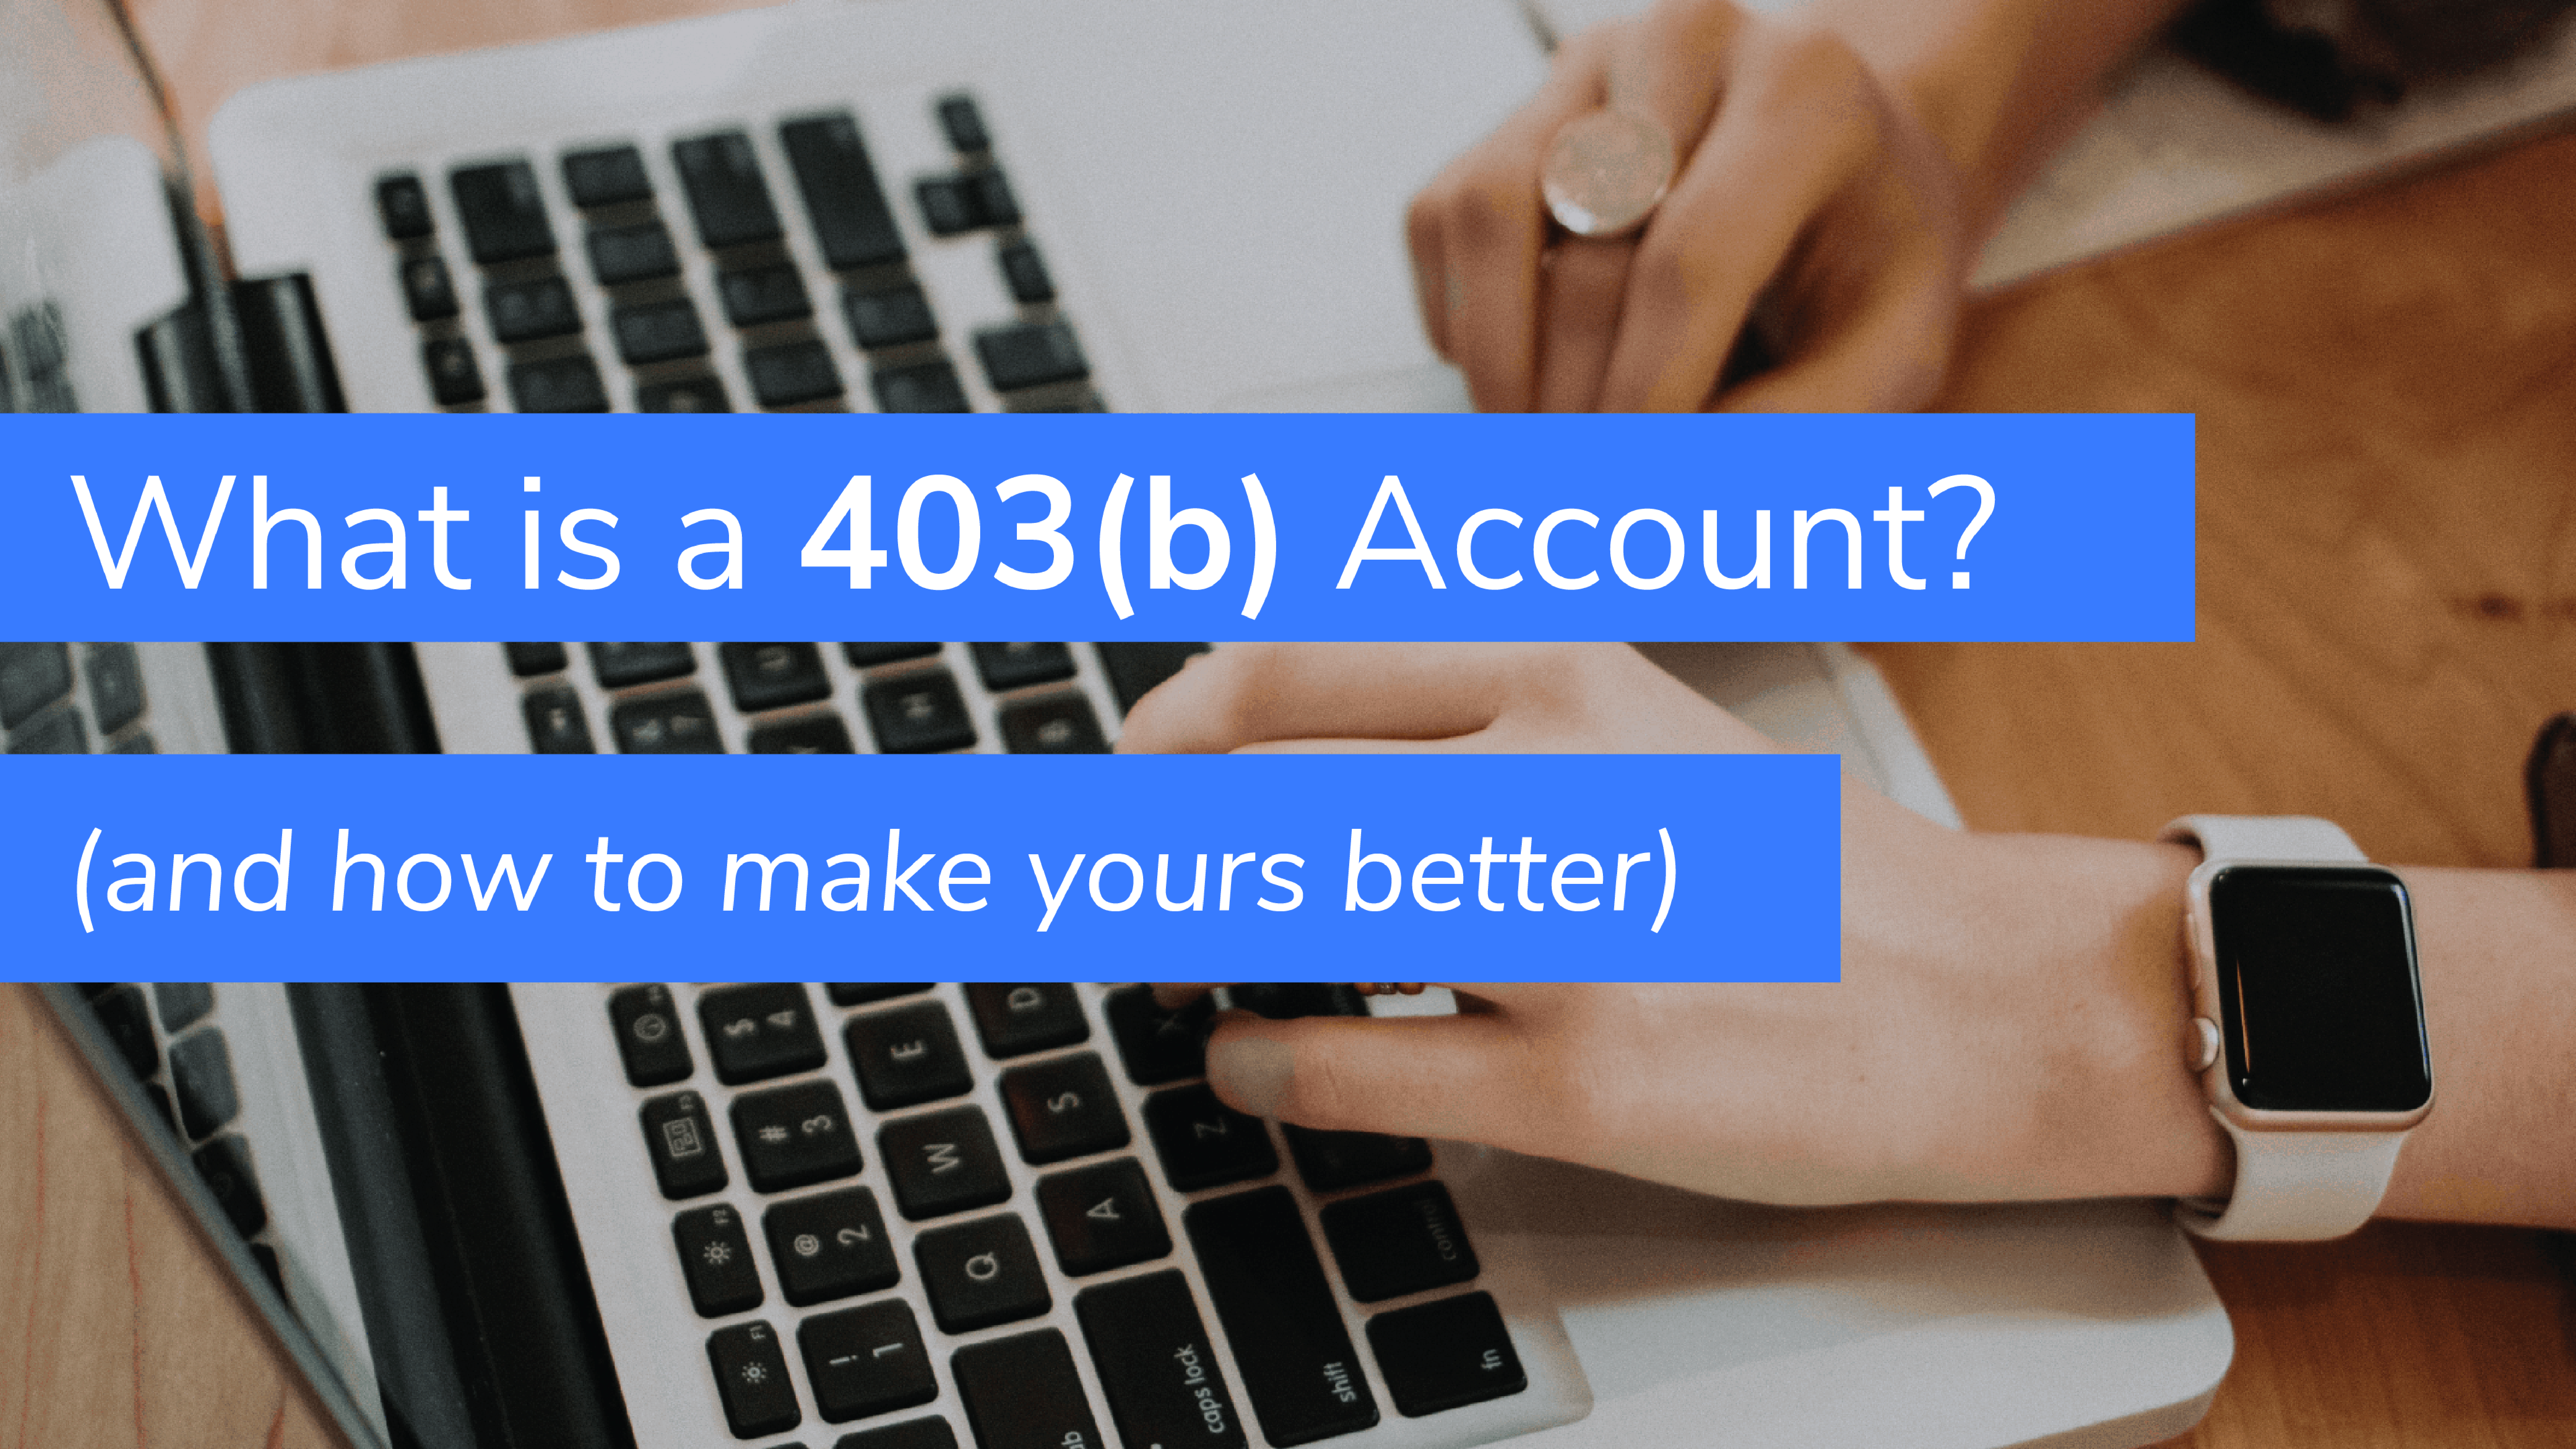 What is a 403(b) Account? (and how to make yours better)